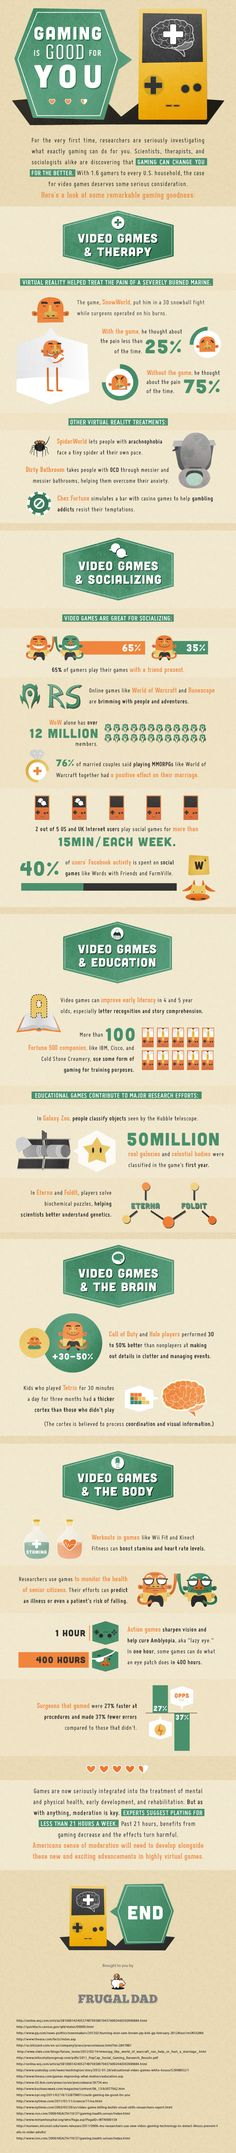 Infographic: Benefits of Video Games